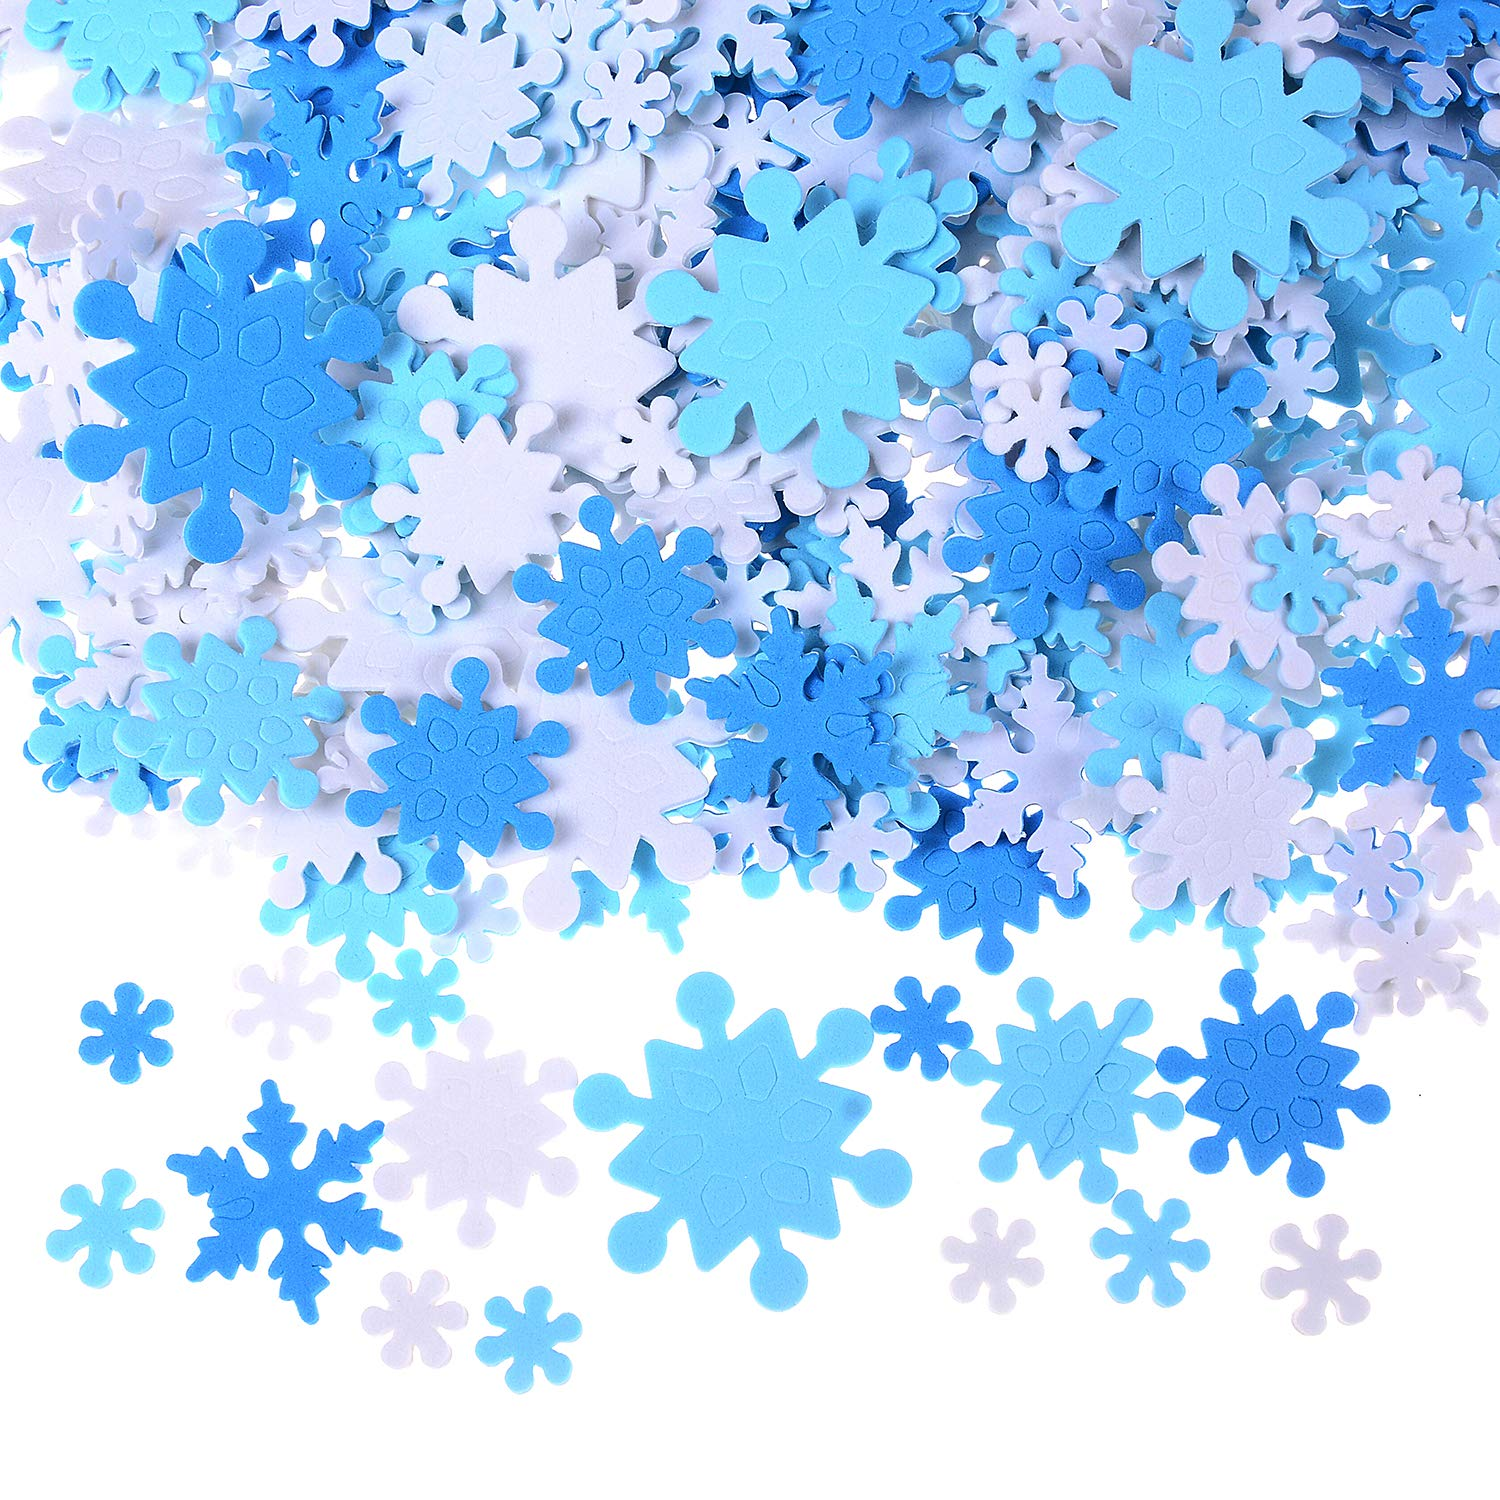 600 Pieces Mini Foam Snowflake Stickers, Self-Adhesive Snowflake Stickers Decals for Christmas Decoration Energy day Moment